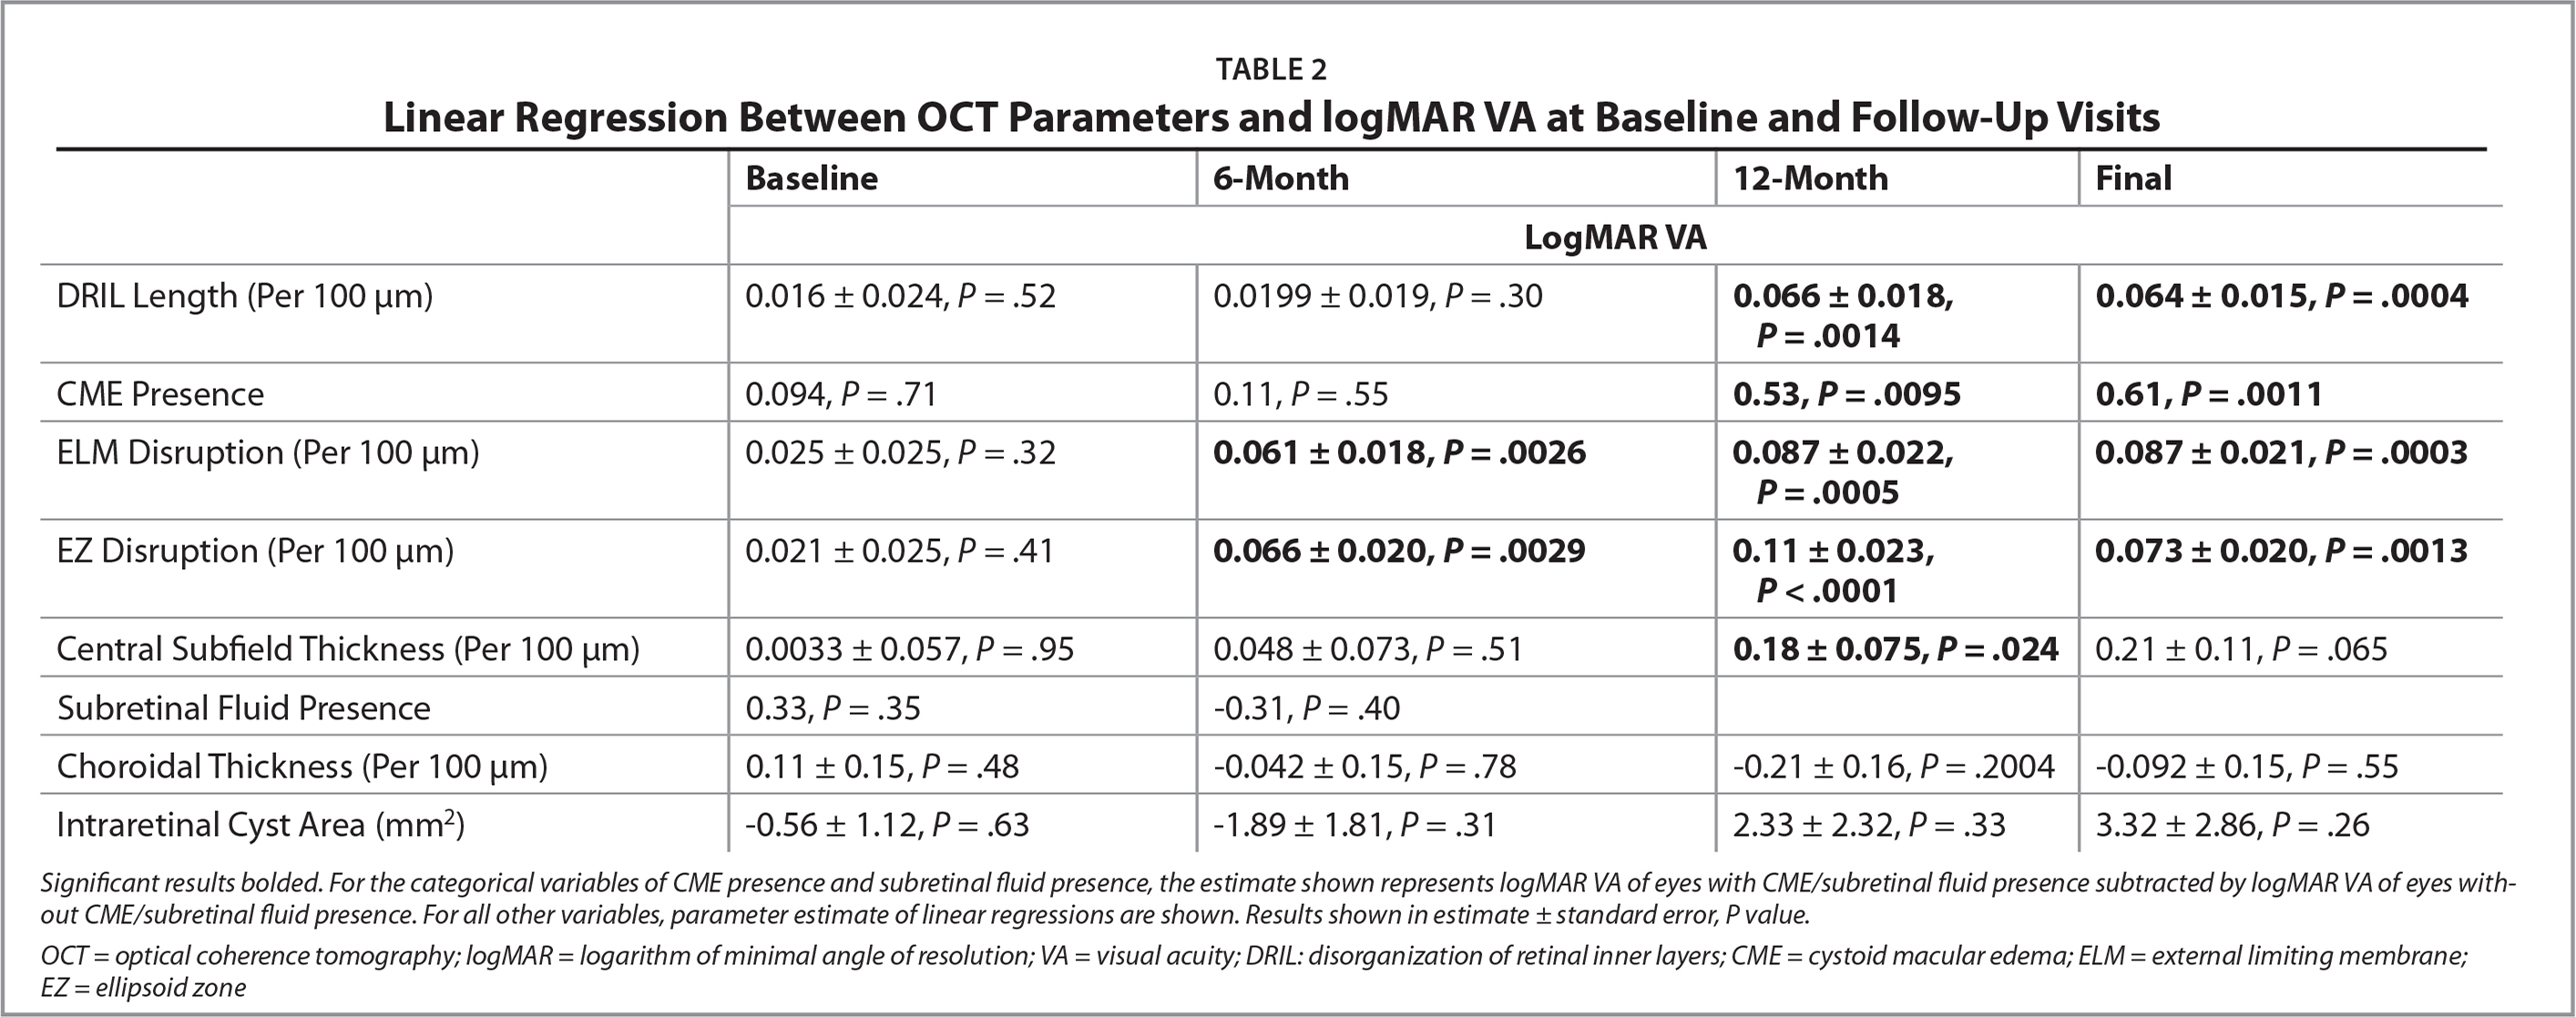 Linear Regression Between OCT Parameters and logMAR VA at Baseline and Follow-Up Visits